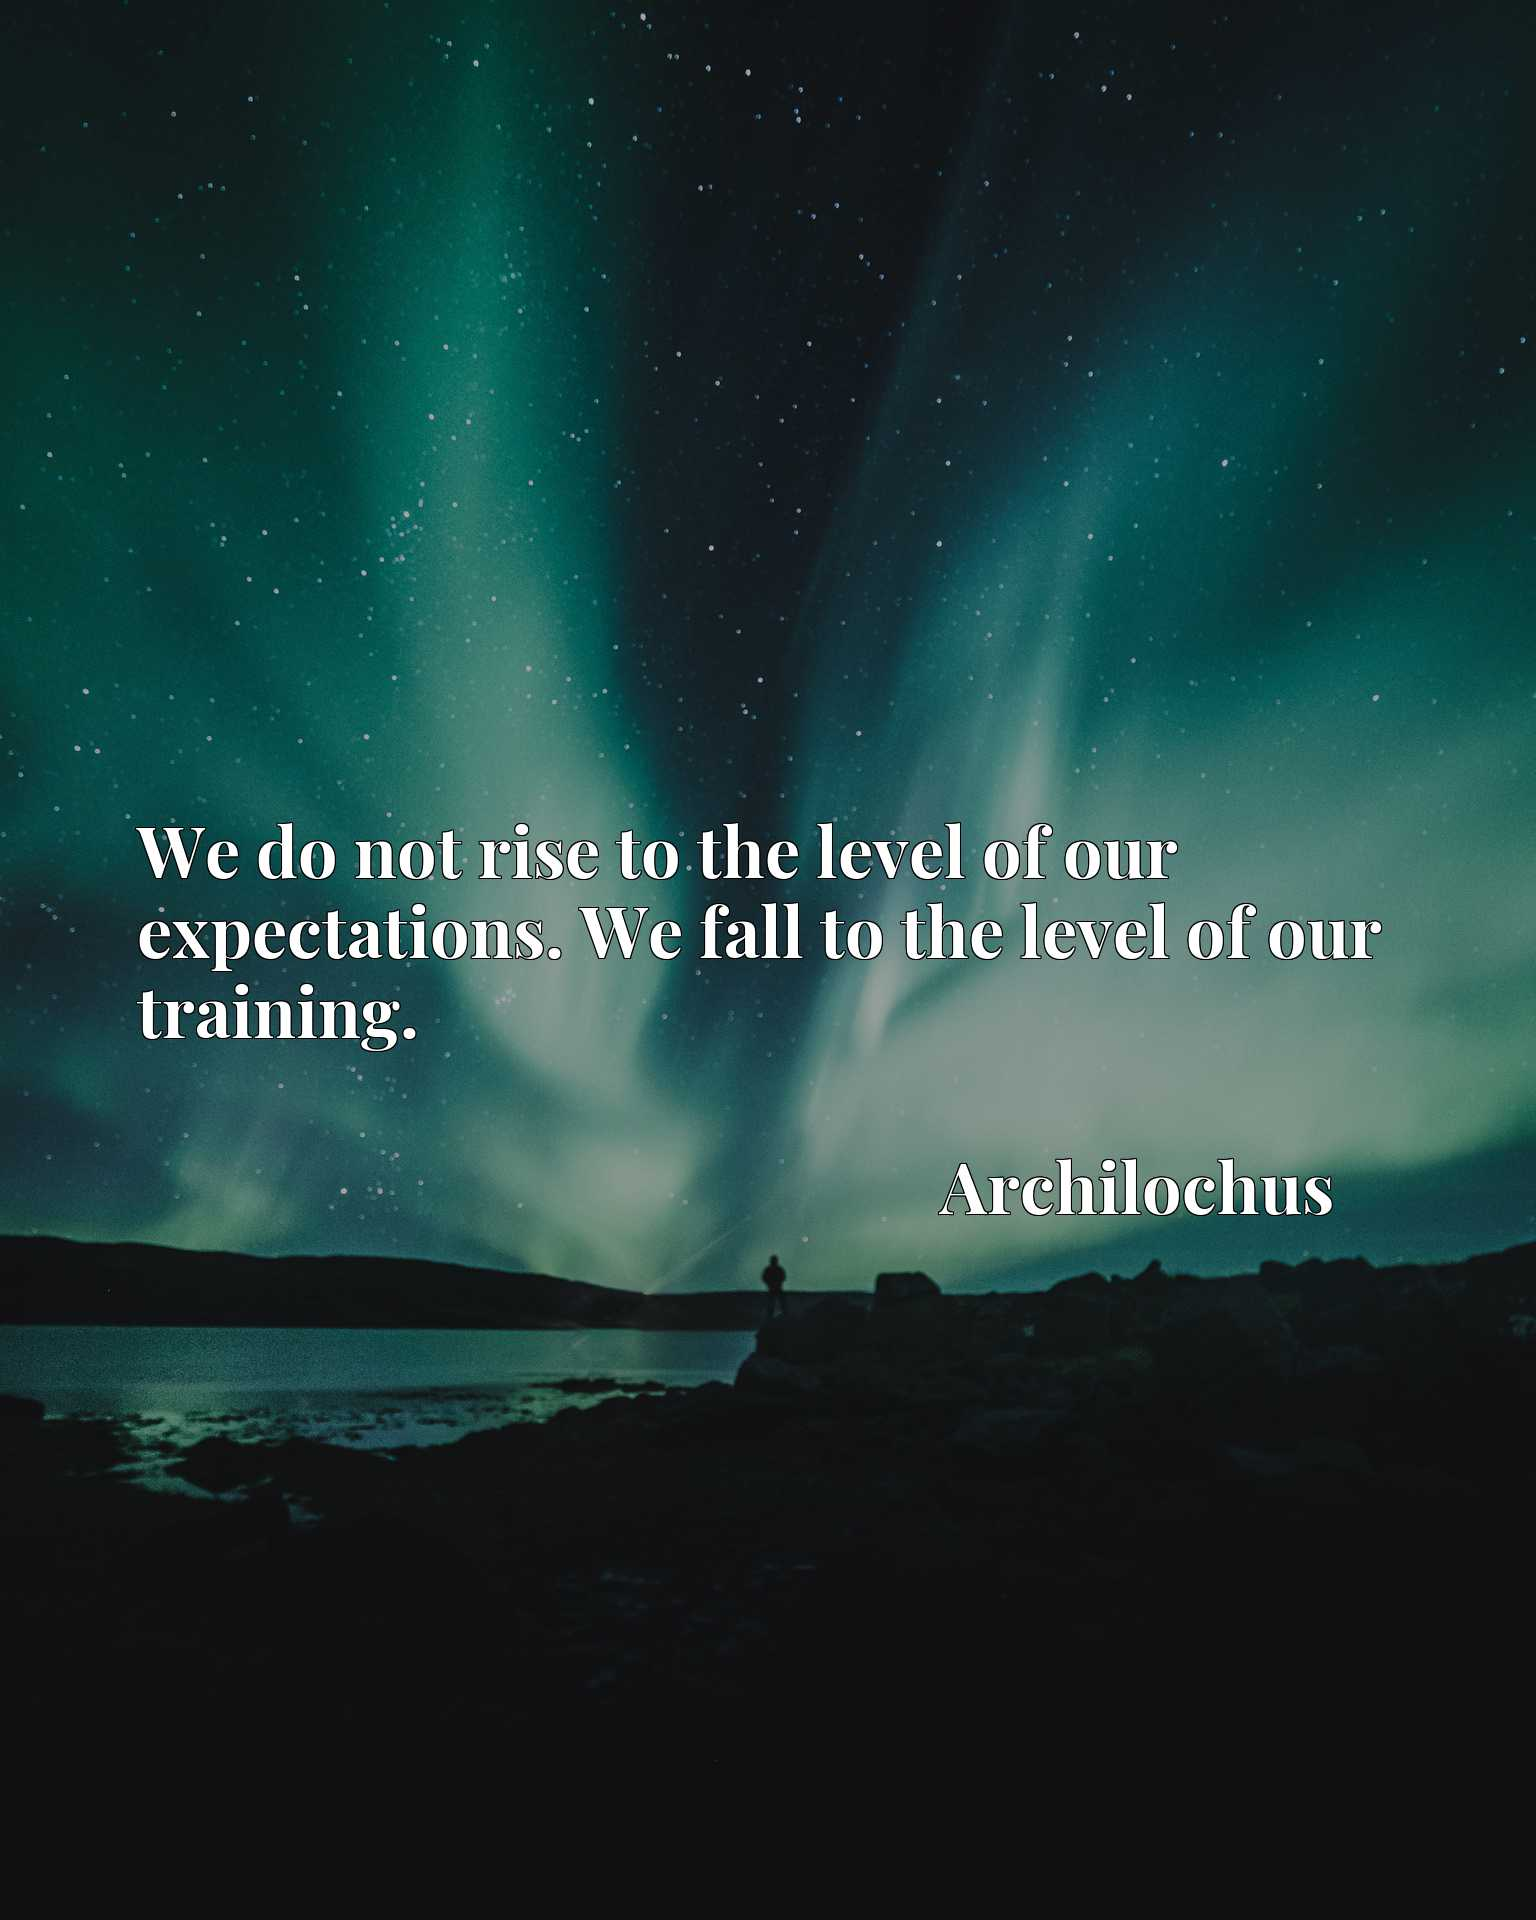 We do not rise to the level of our expectations. We fall to the level of our training.